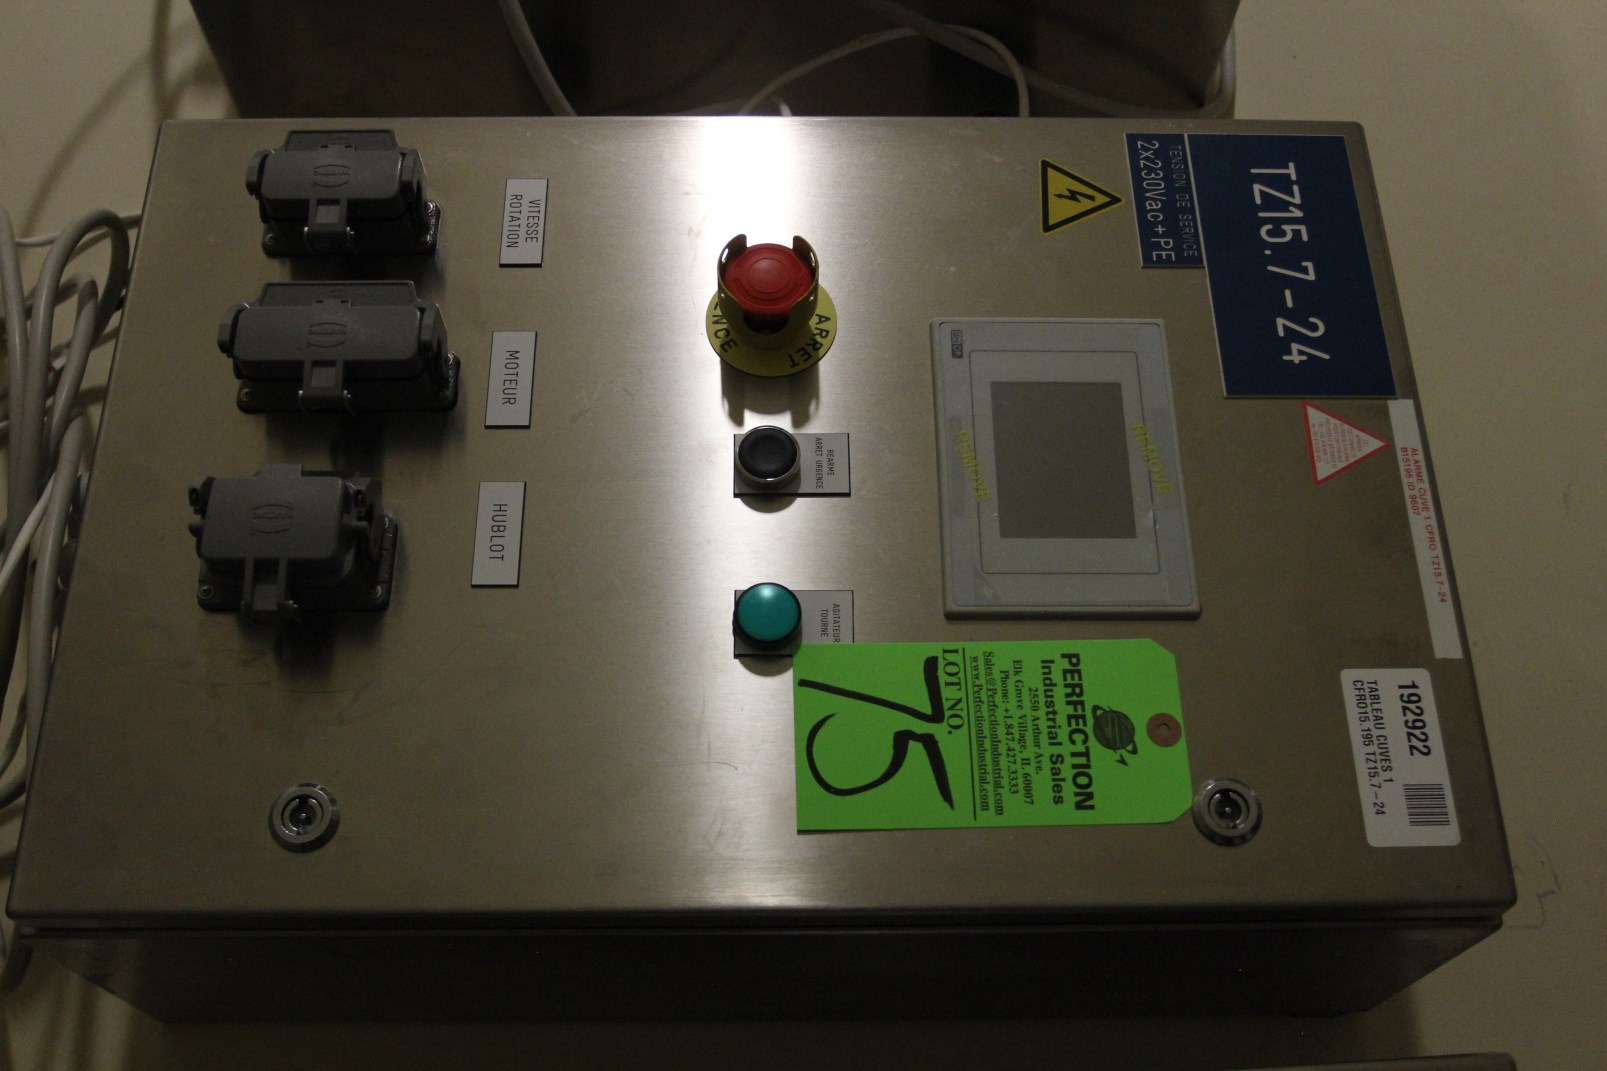 Lot 75 - Siabt UniOp PLC Control for Vessel